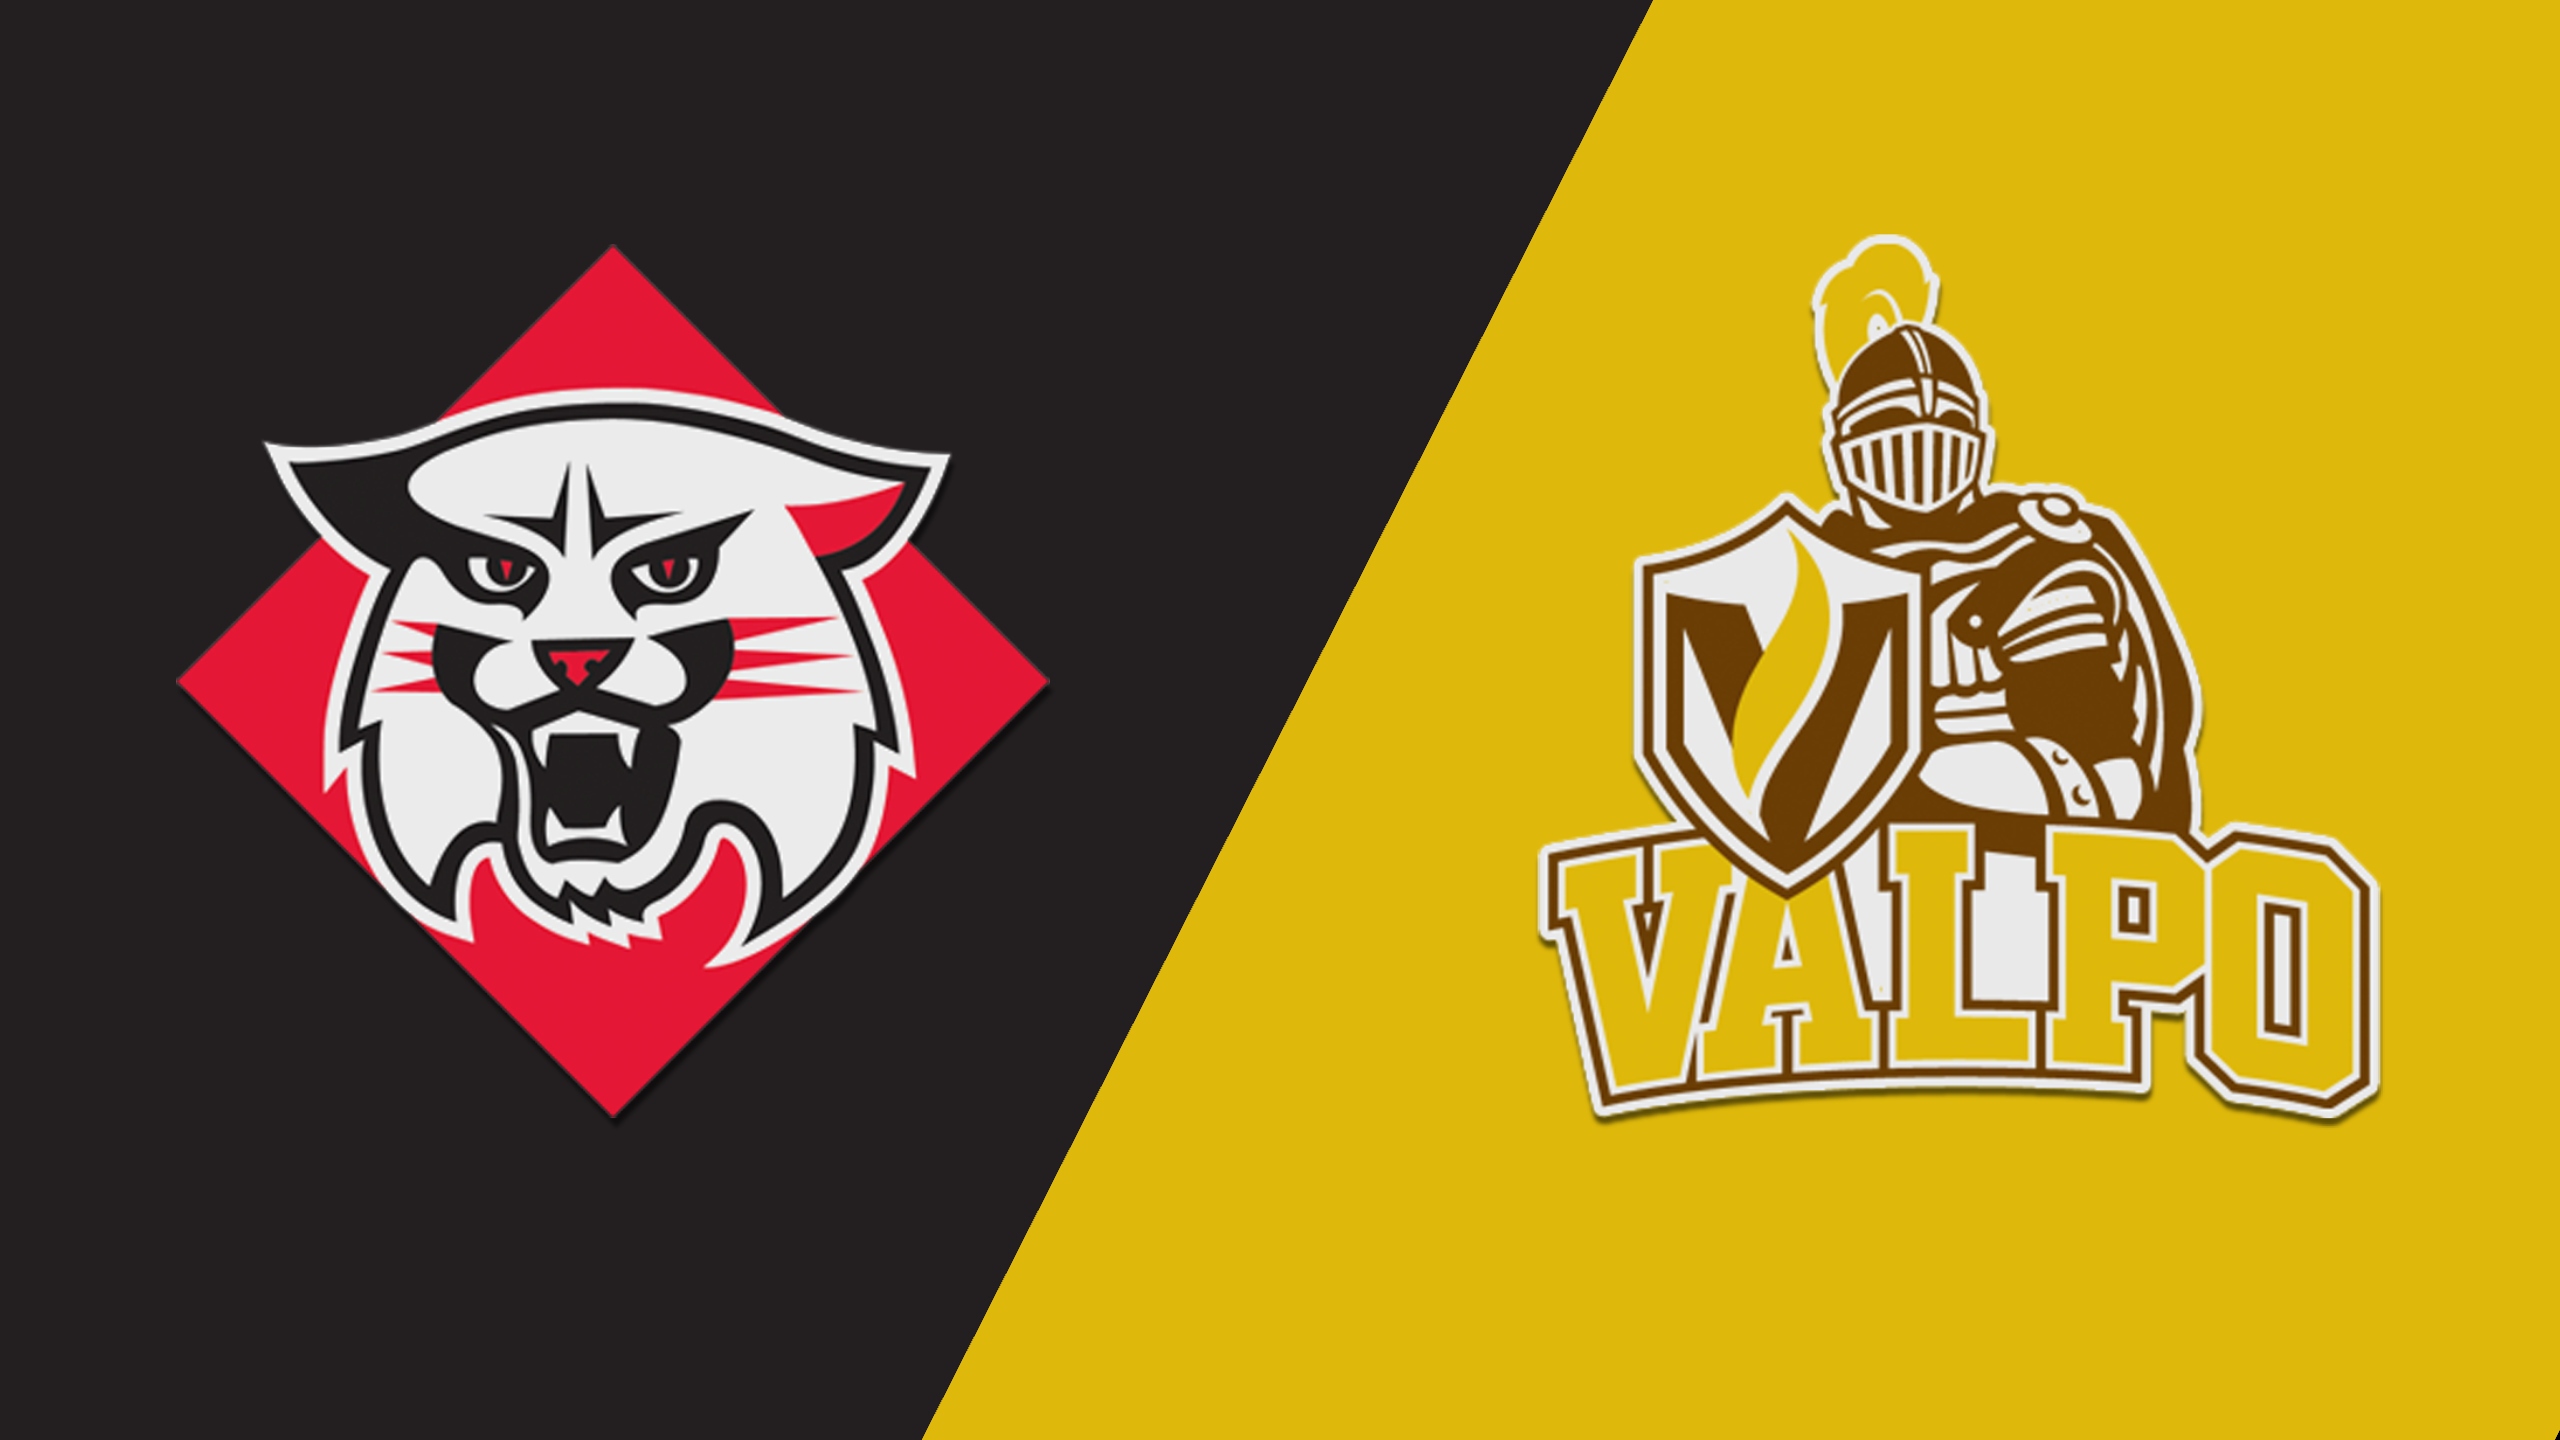 Davidson vs. Valparaiso (Football)